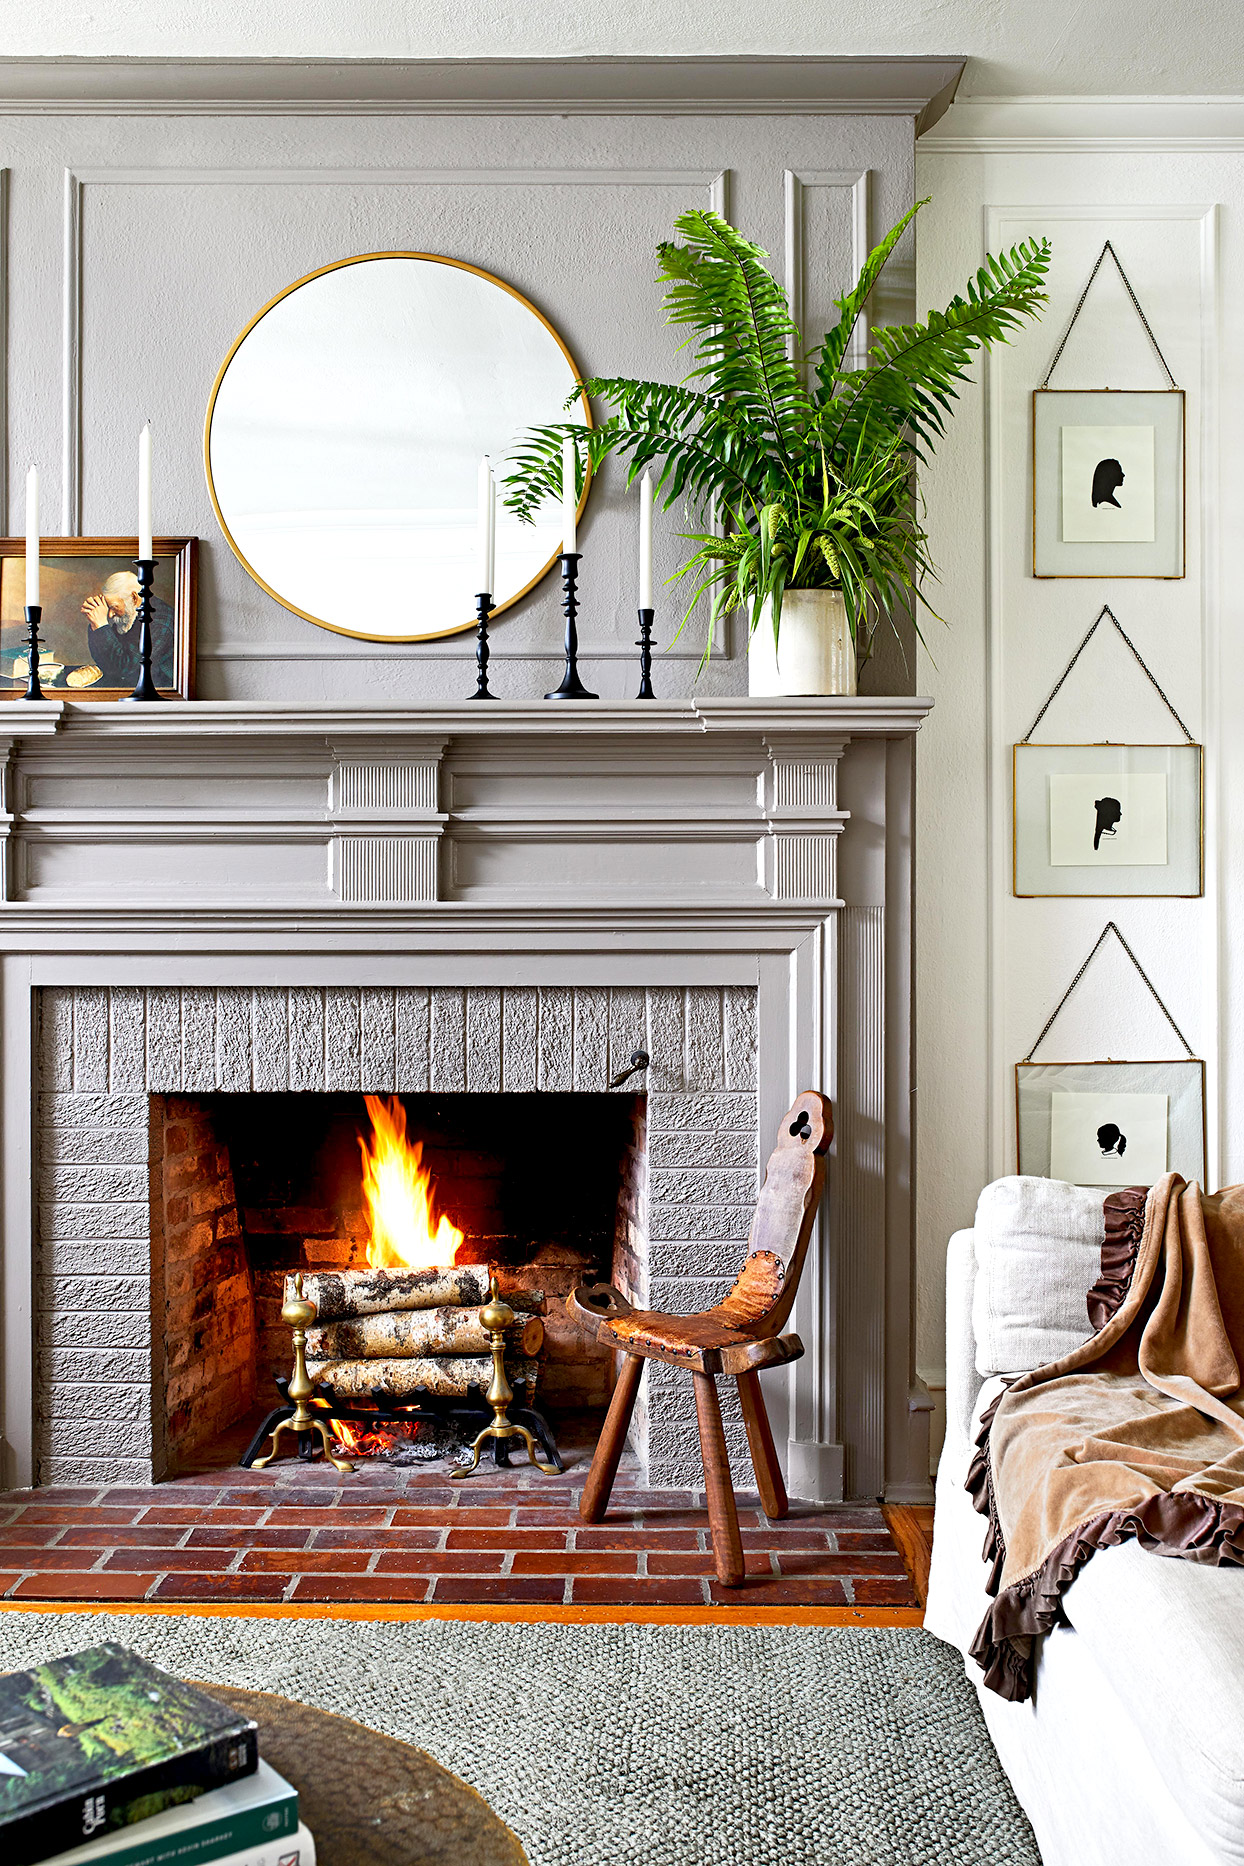 16 Cozy Winter Decorating Ideas You Can Keep Up All Season Long Better Homes Gardens